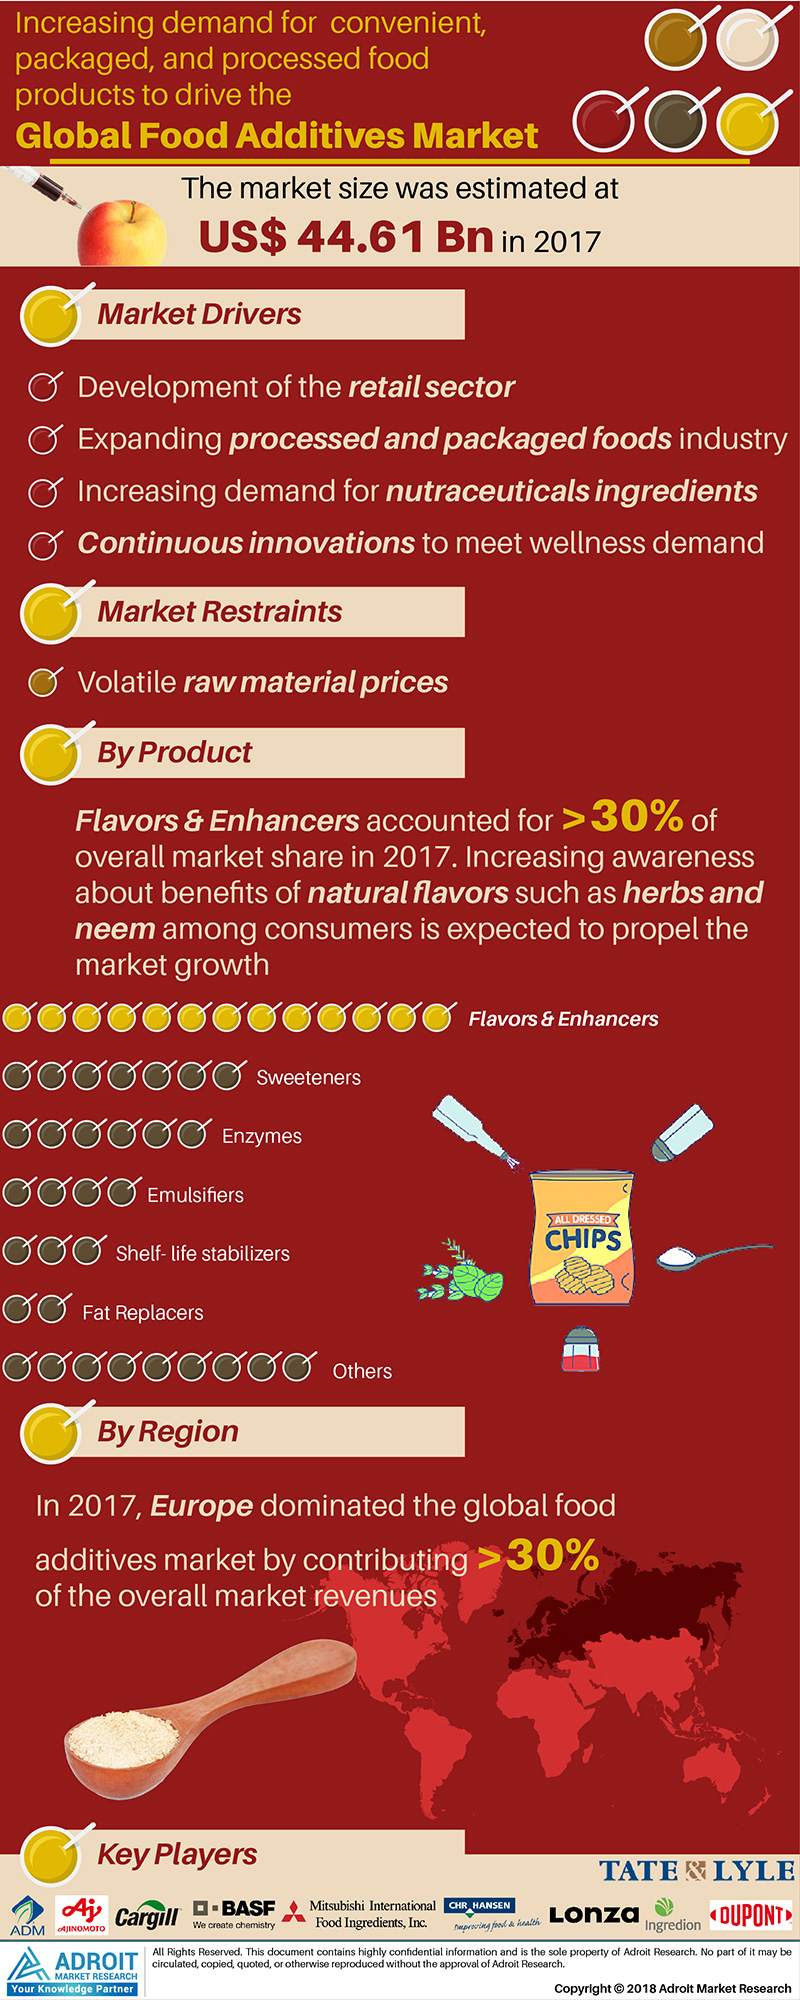 Global Food Additives Market Size 2017 By Product, Region and Forecast 2018 to 2025